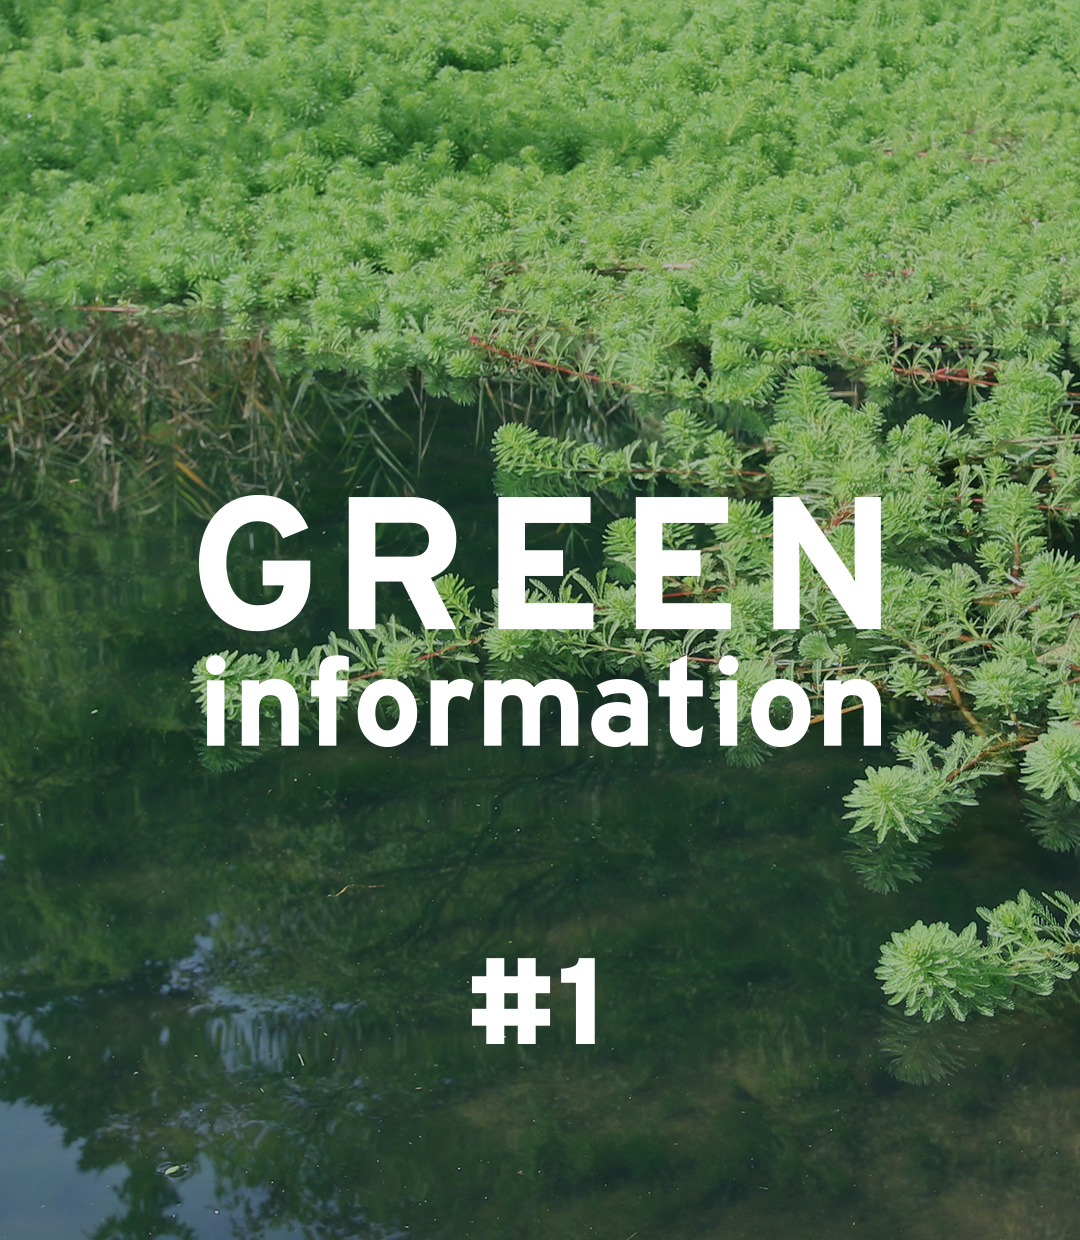 GREEN information #1 'Tropical aquatic plants can overwinter'